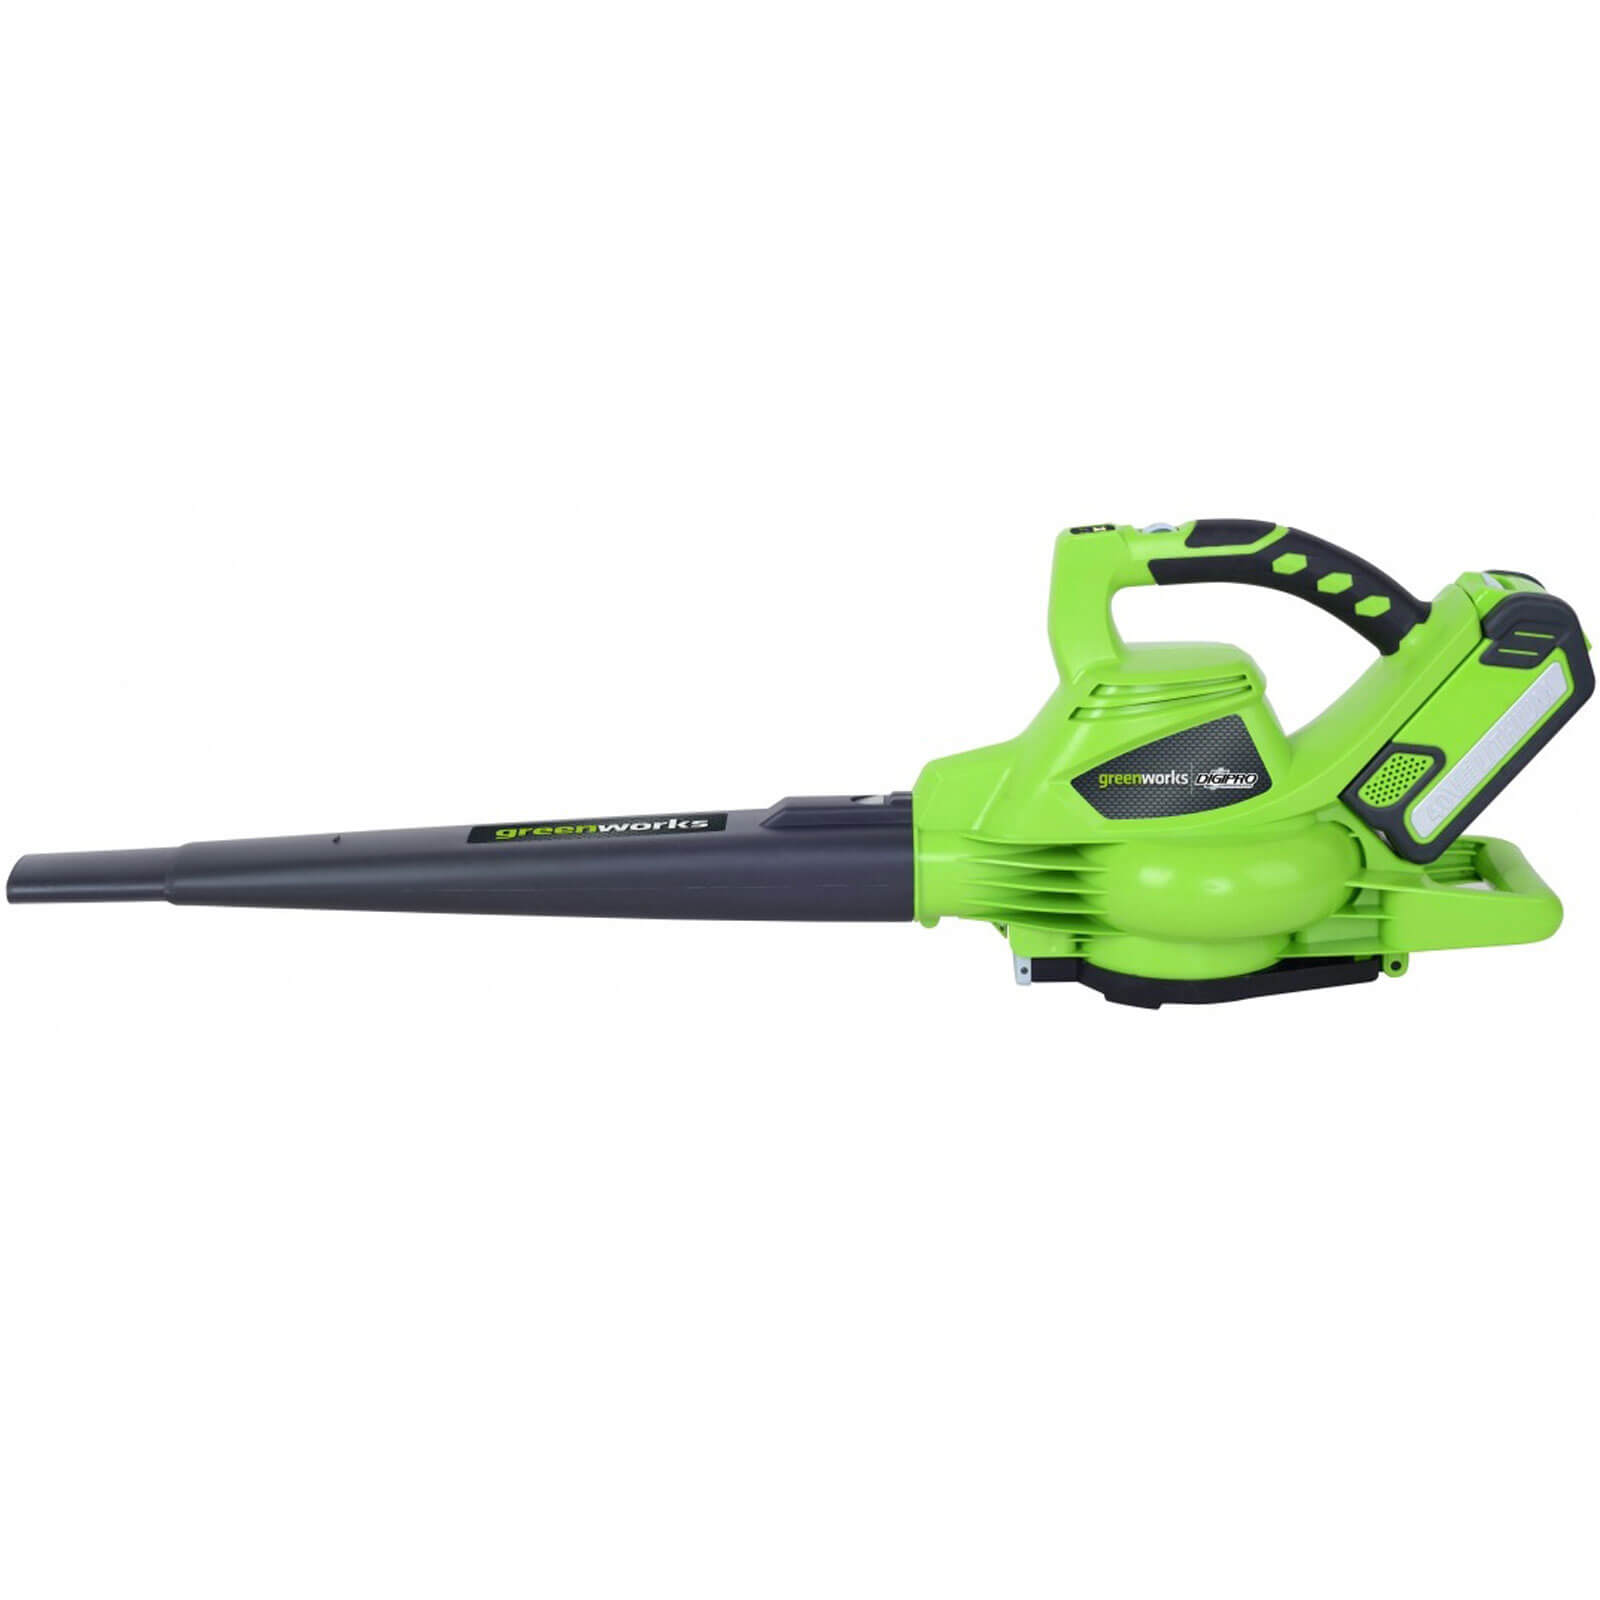 Greenworks GD40BV 40v Cordless Brushless Garden Vacuum & Leaf Blower 2 x 2ah Liion Charger